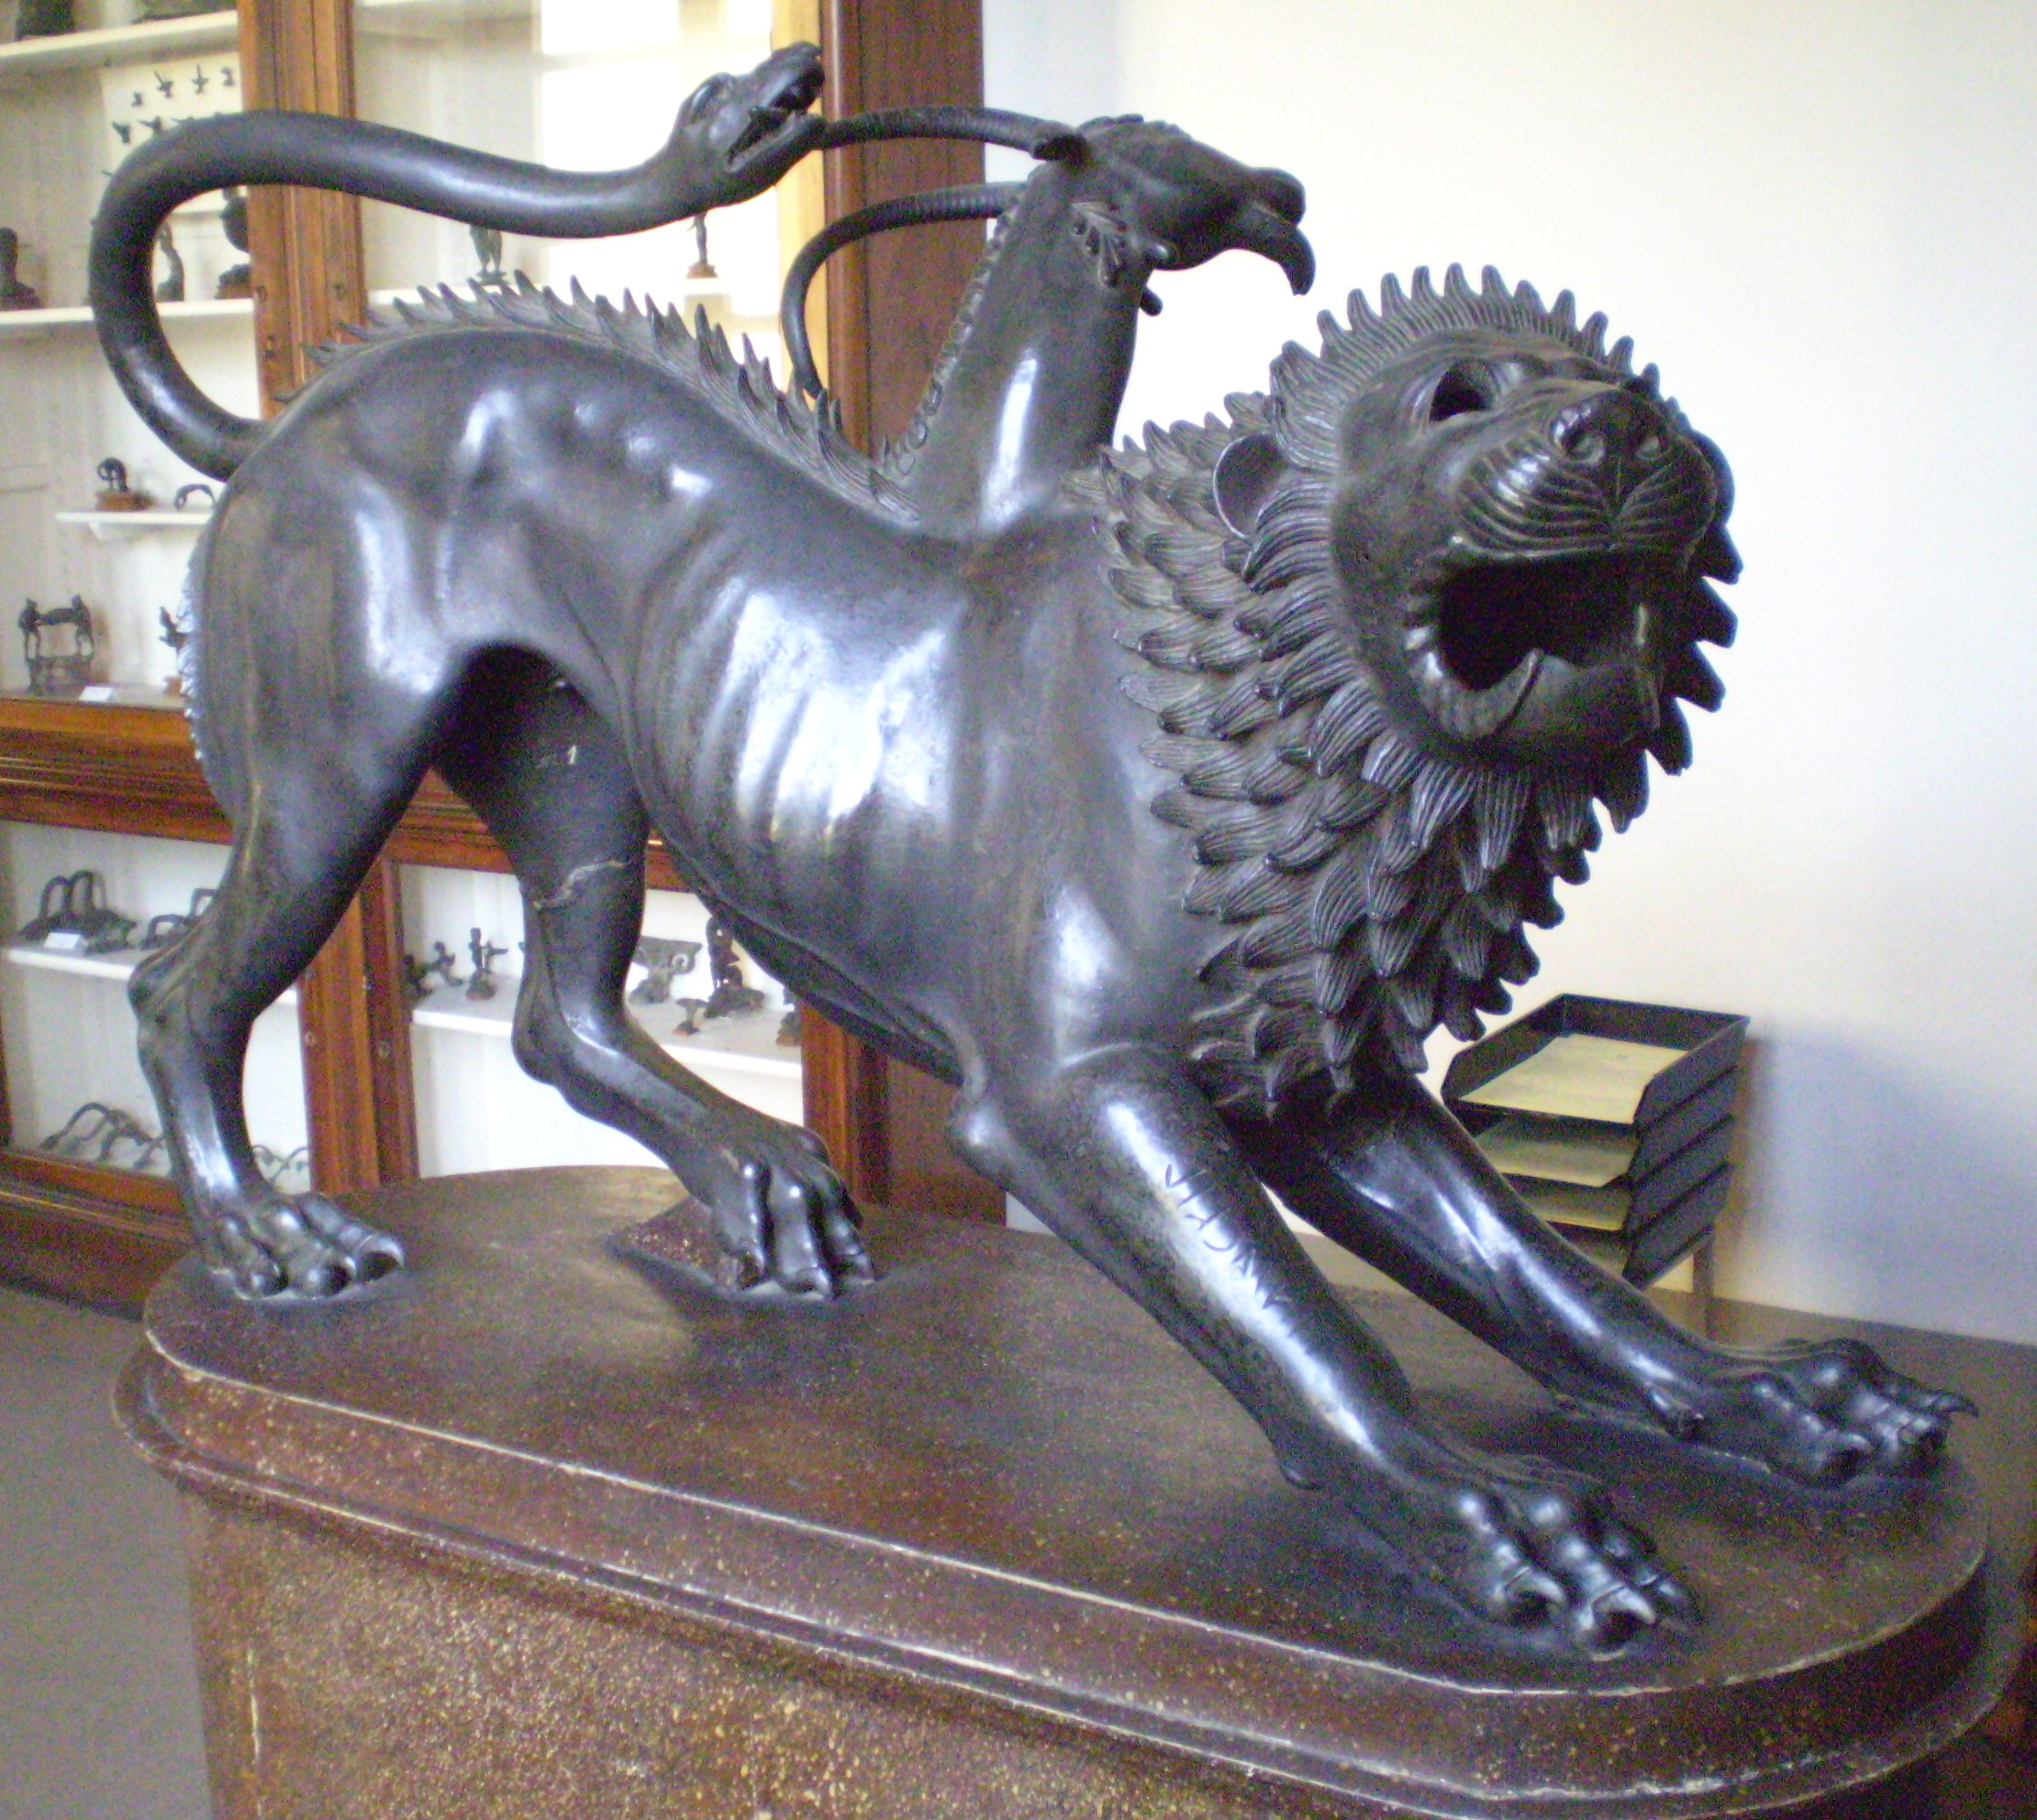 https://en.wikipedia.org/wiki/Chimera_%28mythology%29